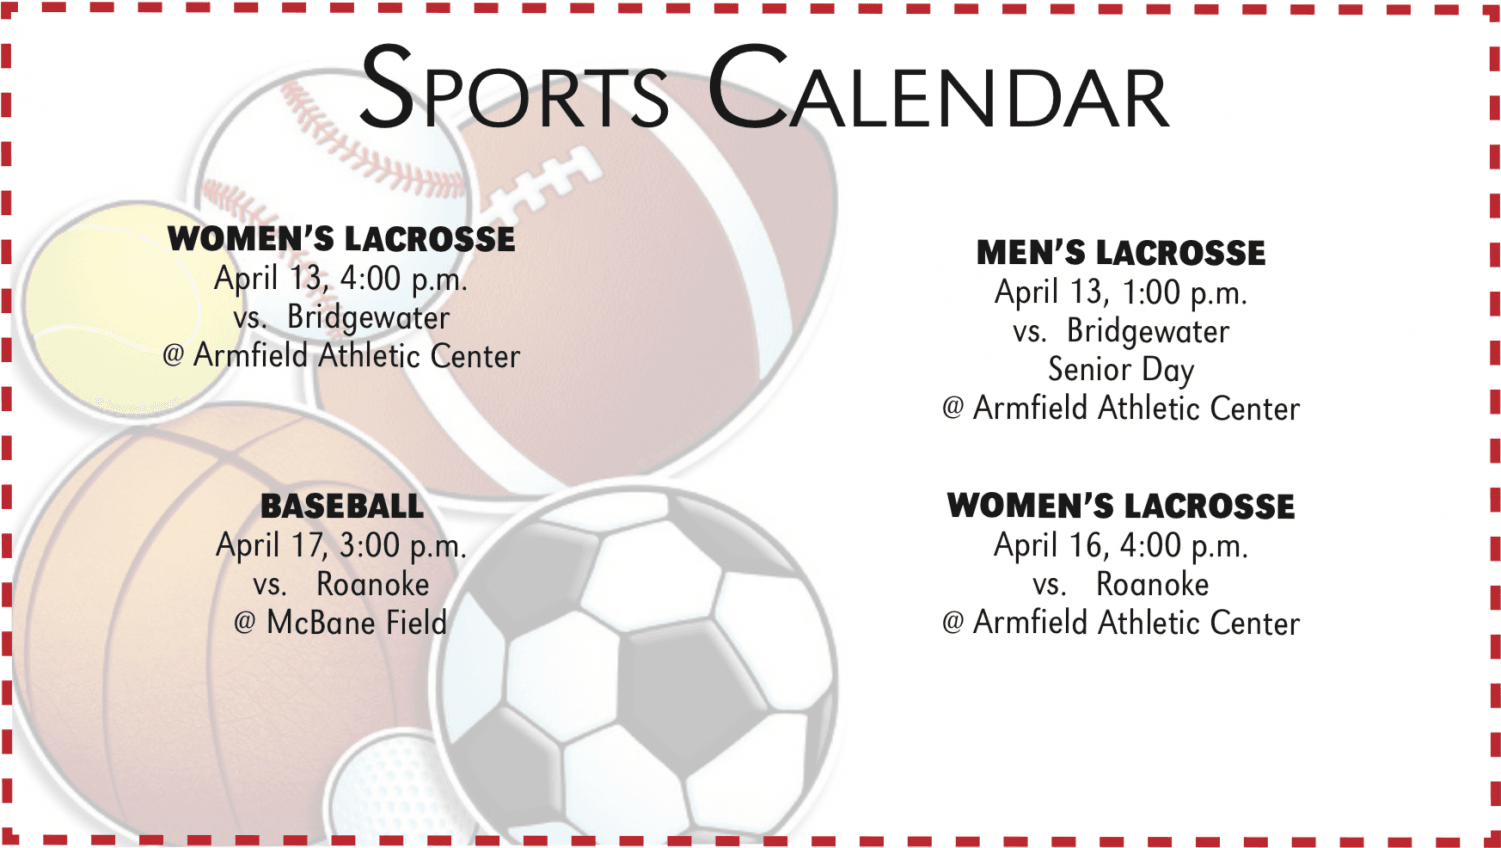 Sports Calendar Vol 105 Issue 22 April 12-April 18